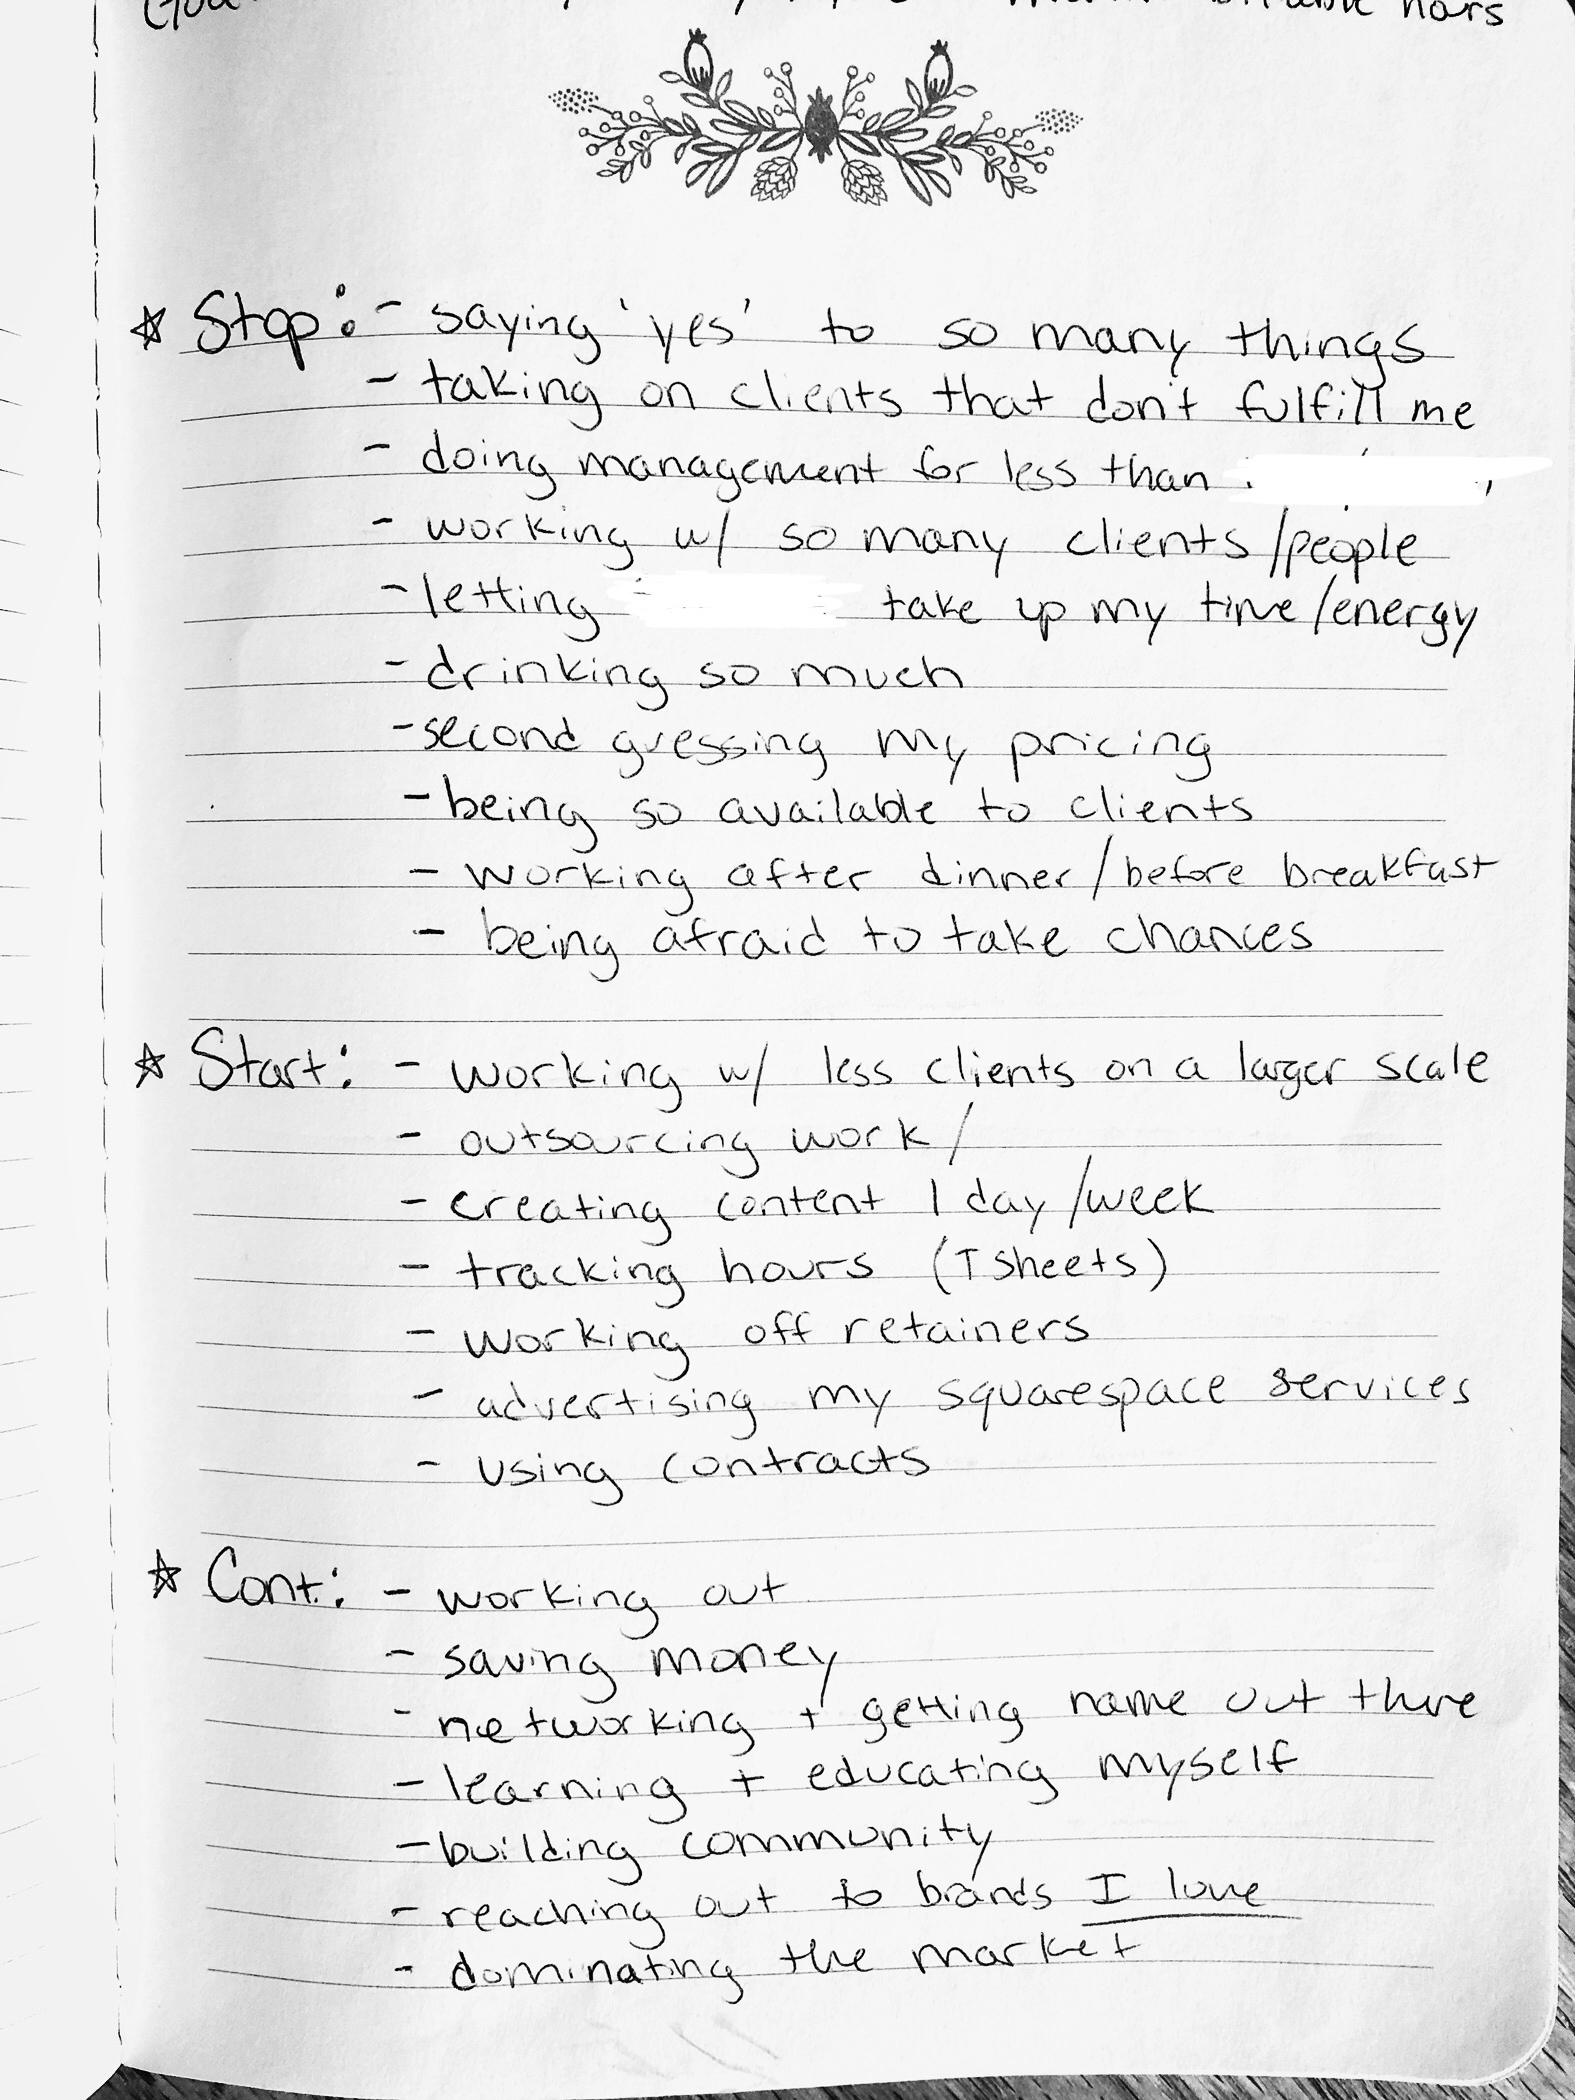 start stop and continue method to start doing more of what you love